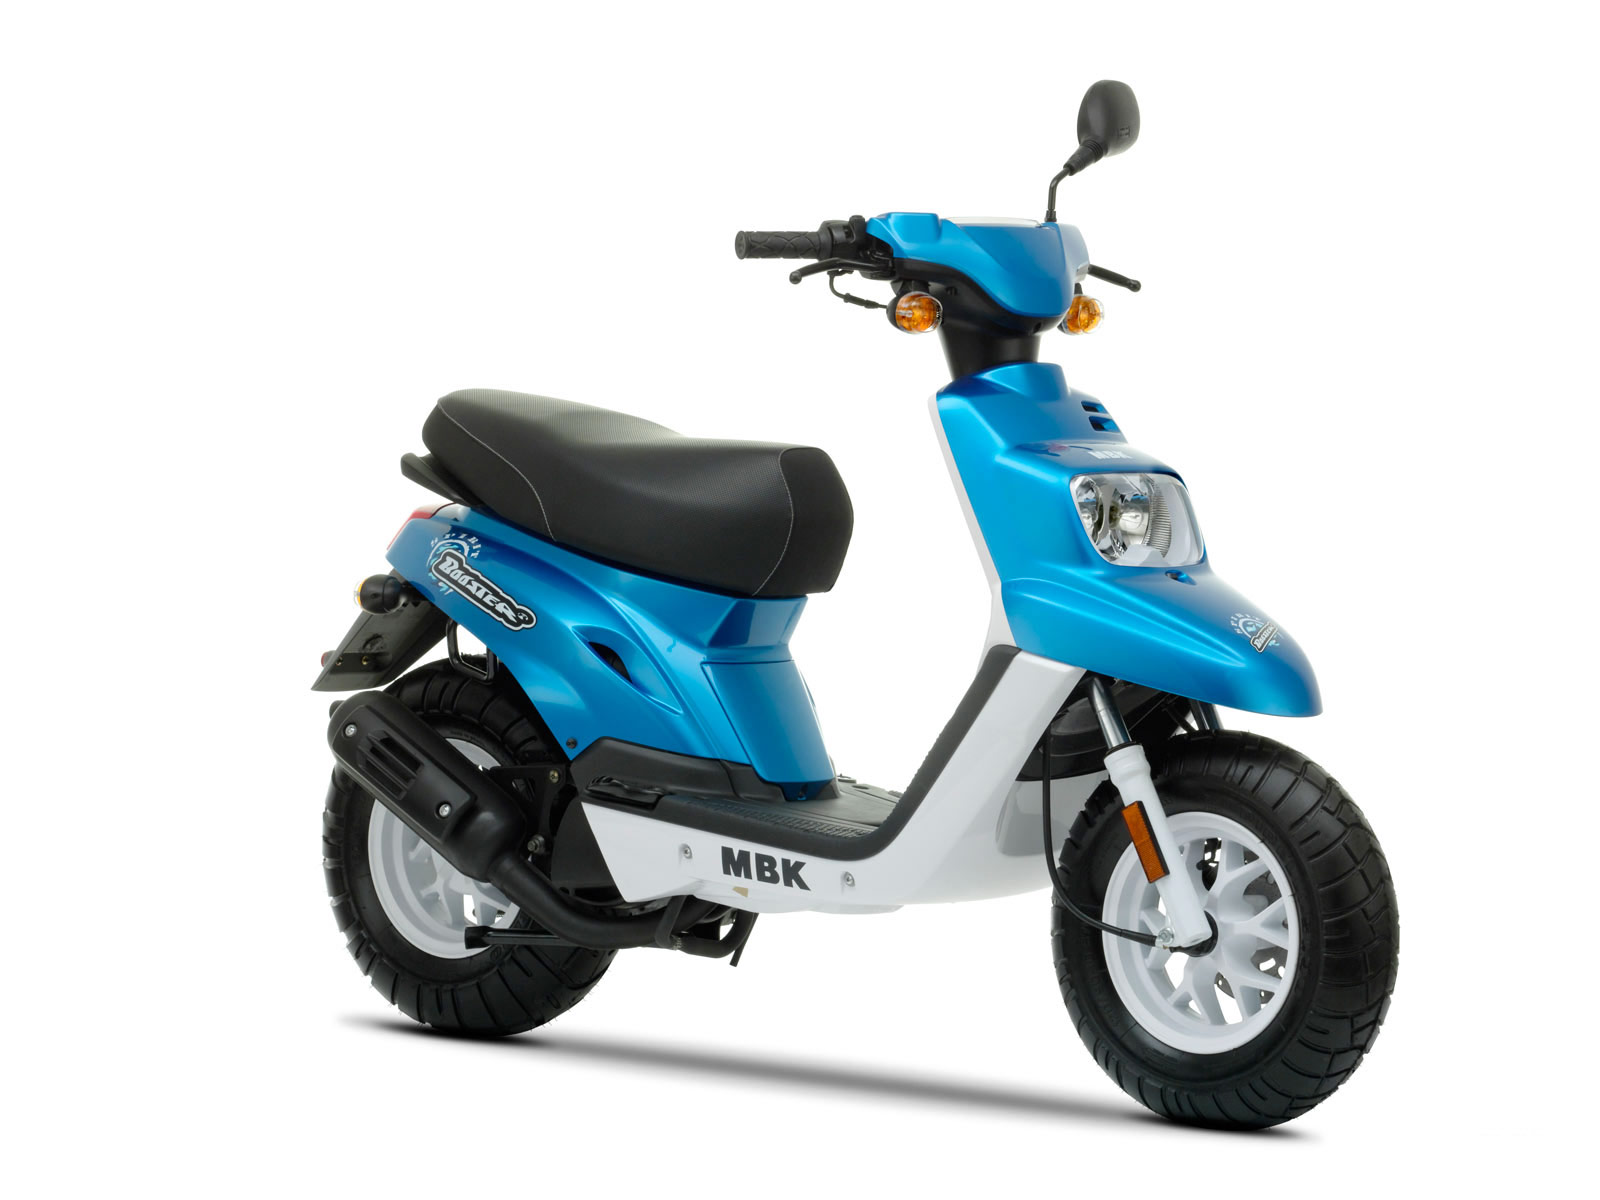 2009 Mbk Booster Scooter Pictures Specifications